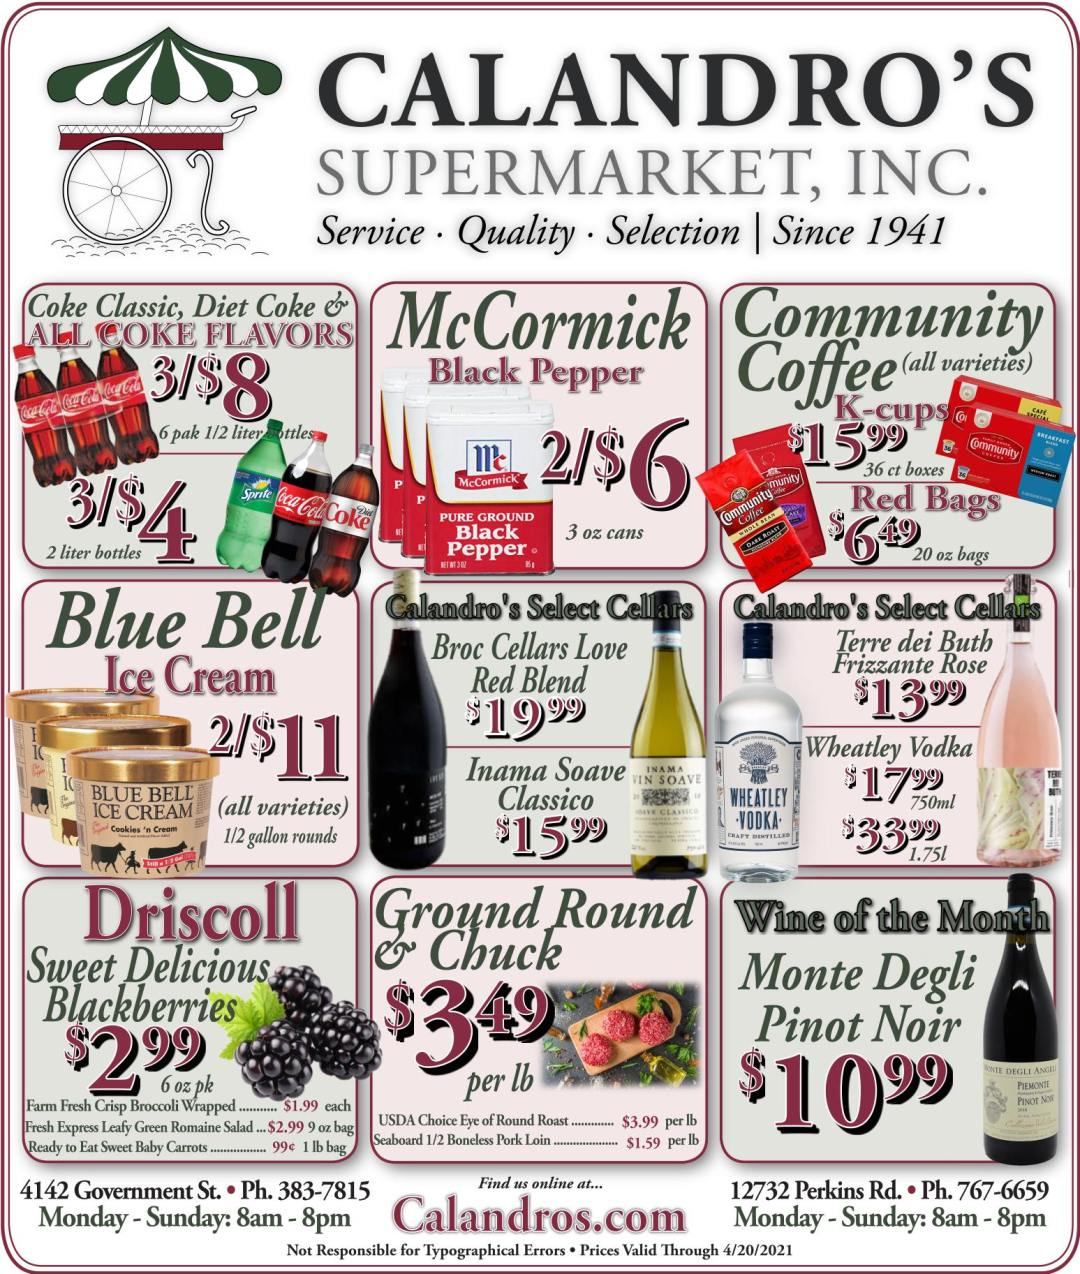 Calandro's Fabulous Finds & Deals for This Week! (4/15/2021 – 4/20/2021)